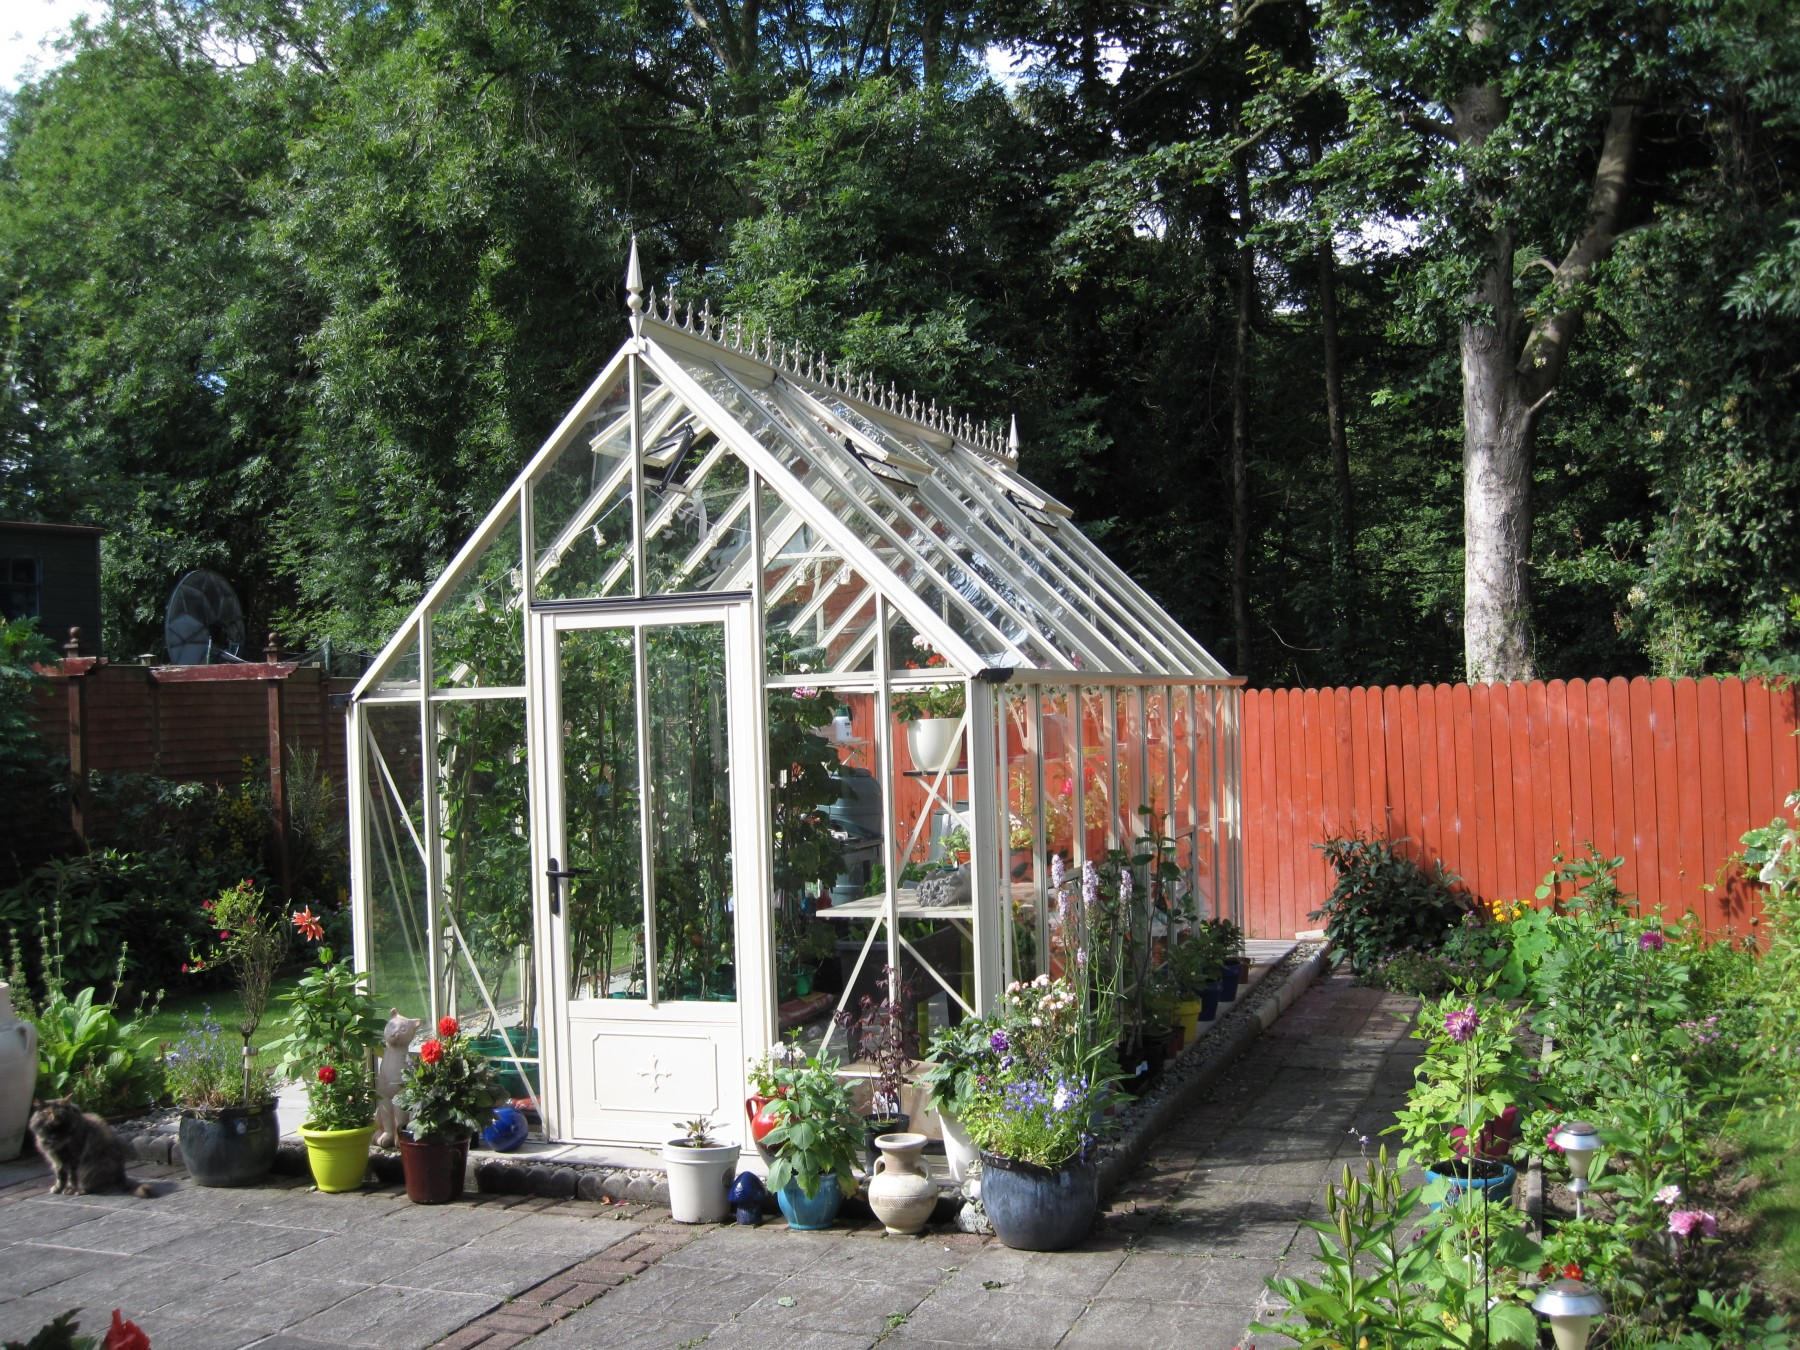 Victorian ratcliffe ivory greenhouse 8 39 6 x 16 39 9 for Victorian style greenhouse